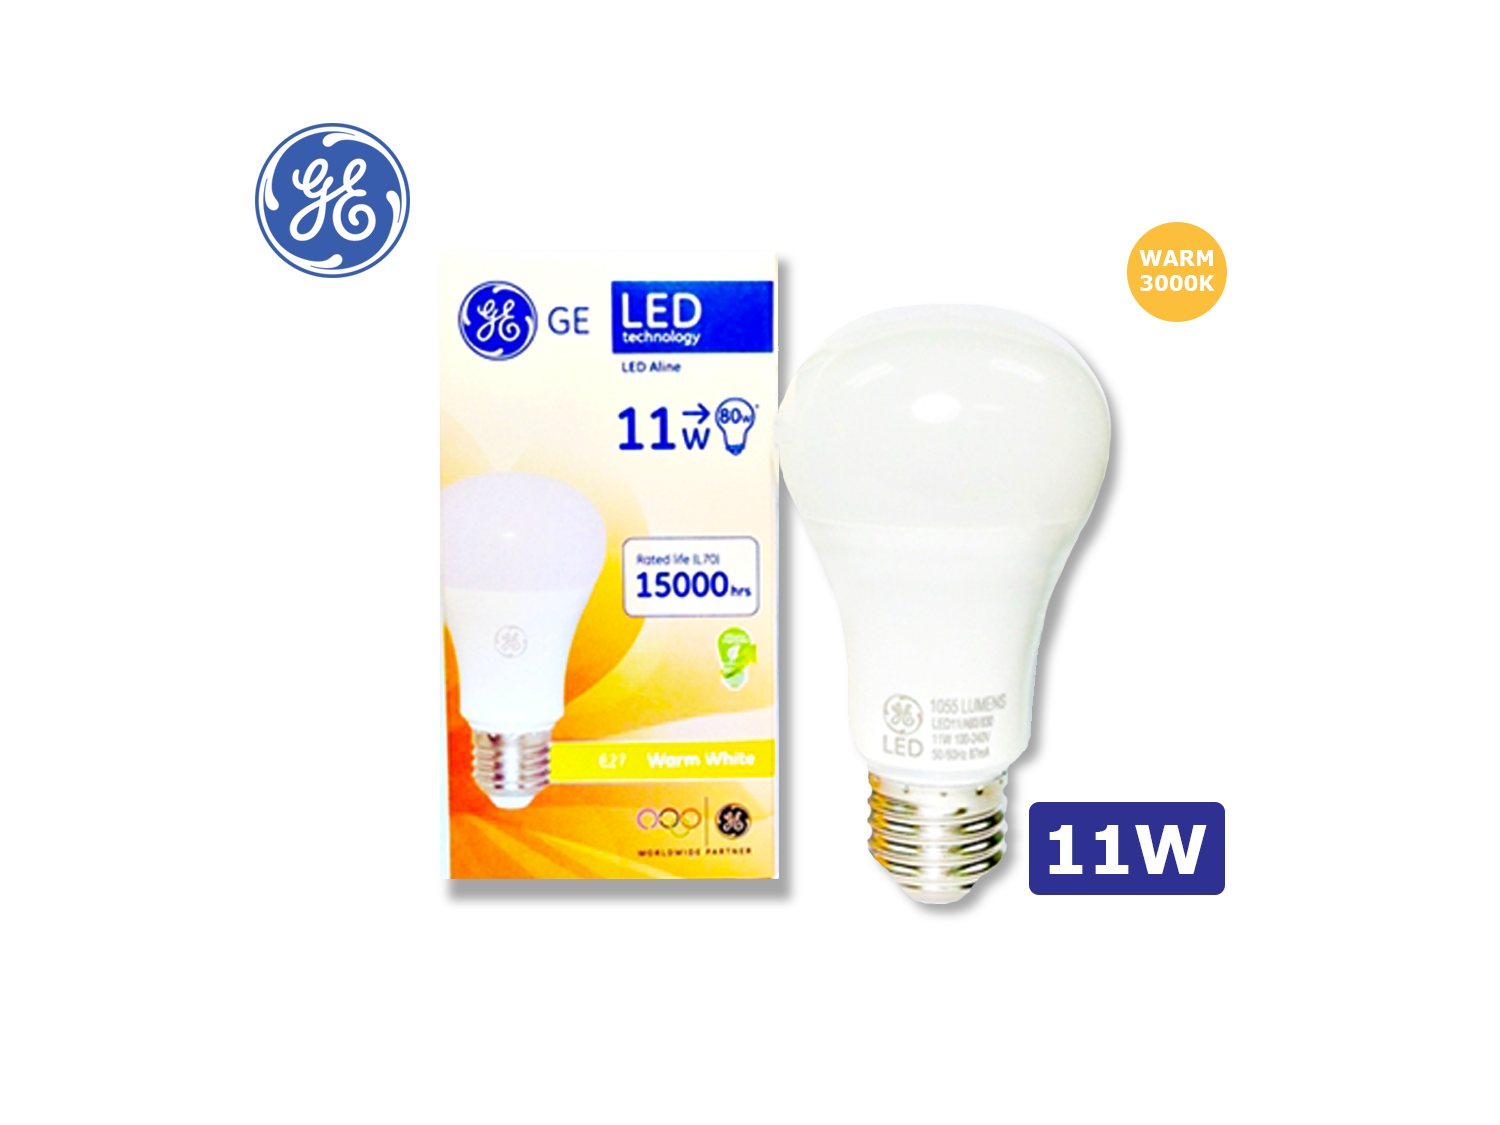 GE LED A60/11W/E27/3000K(Warm White)/100-240V ; SKU : 	74986BT, LED11/A60/830/100-240V/E27